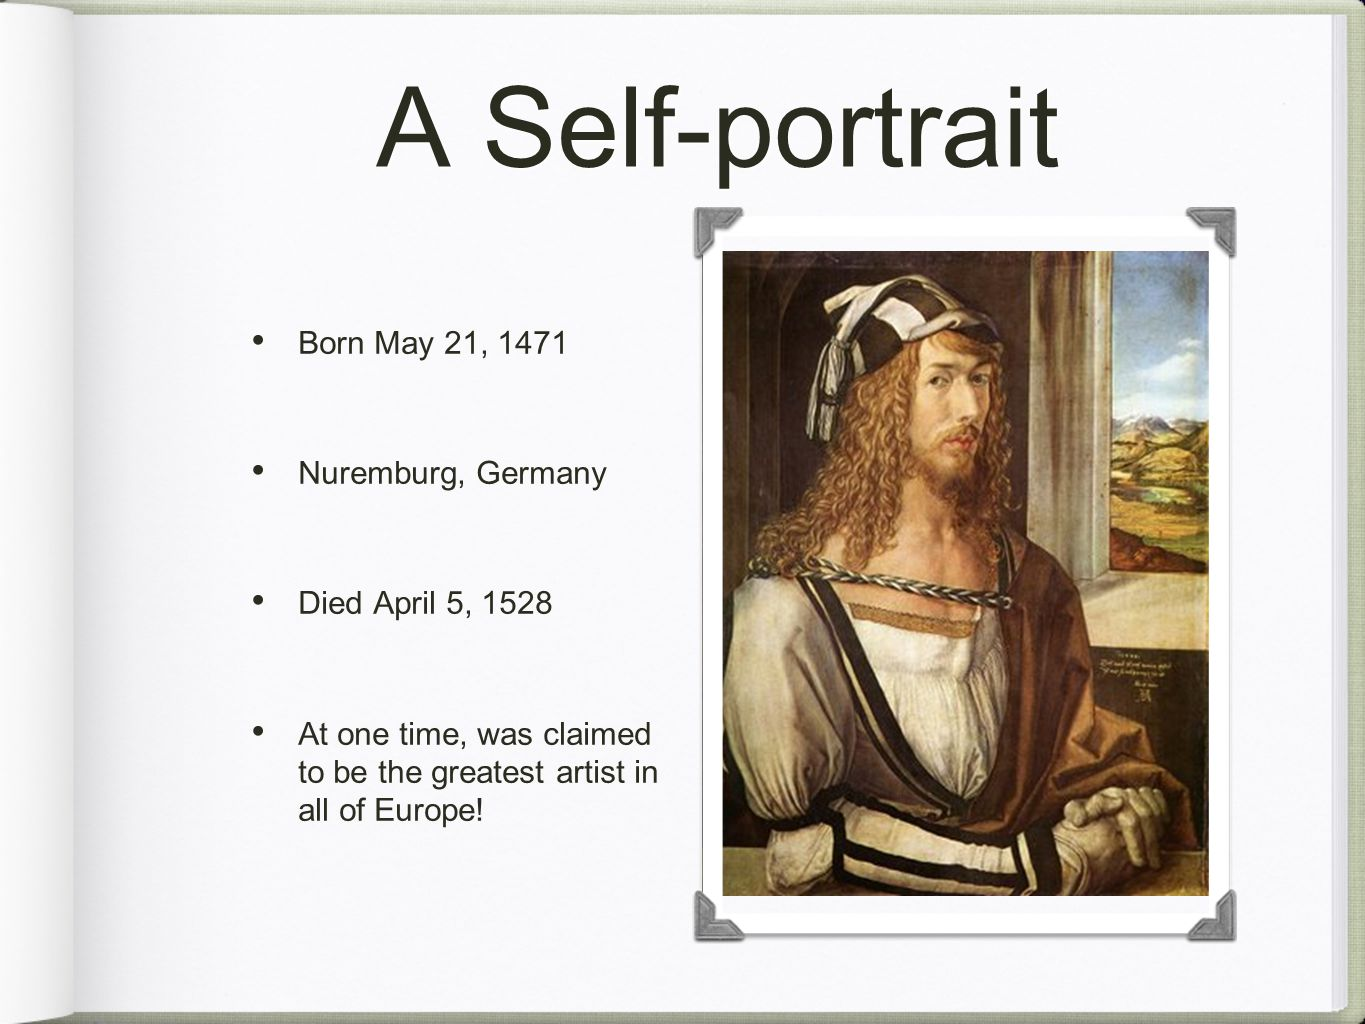 A Self-portrait Born May 21, 1471 Nuremburg, Germany Died April 5, 1528 At one time, was claimed to be the greatest artist in all of Europe!